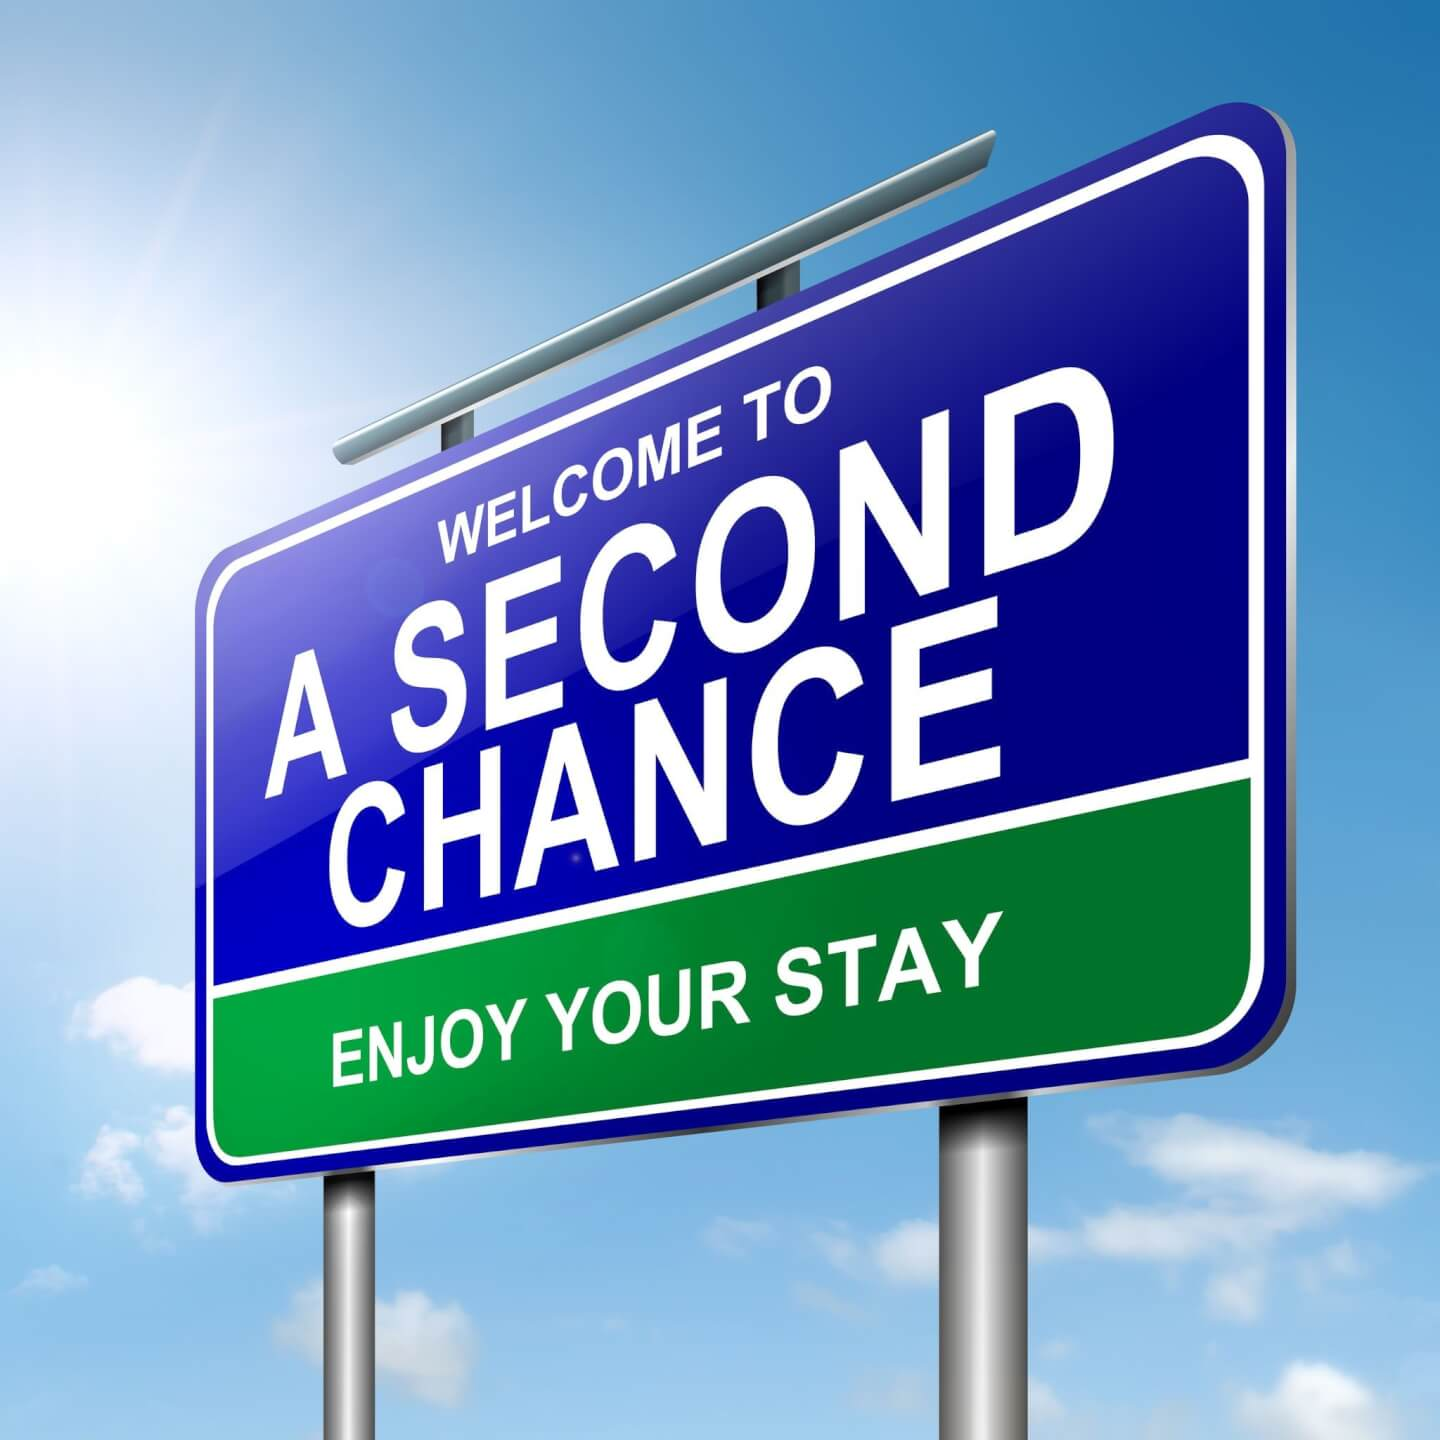 Get a Second Chance with the First Time Drug Offenders Program